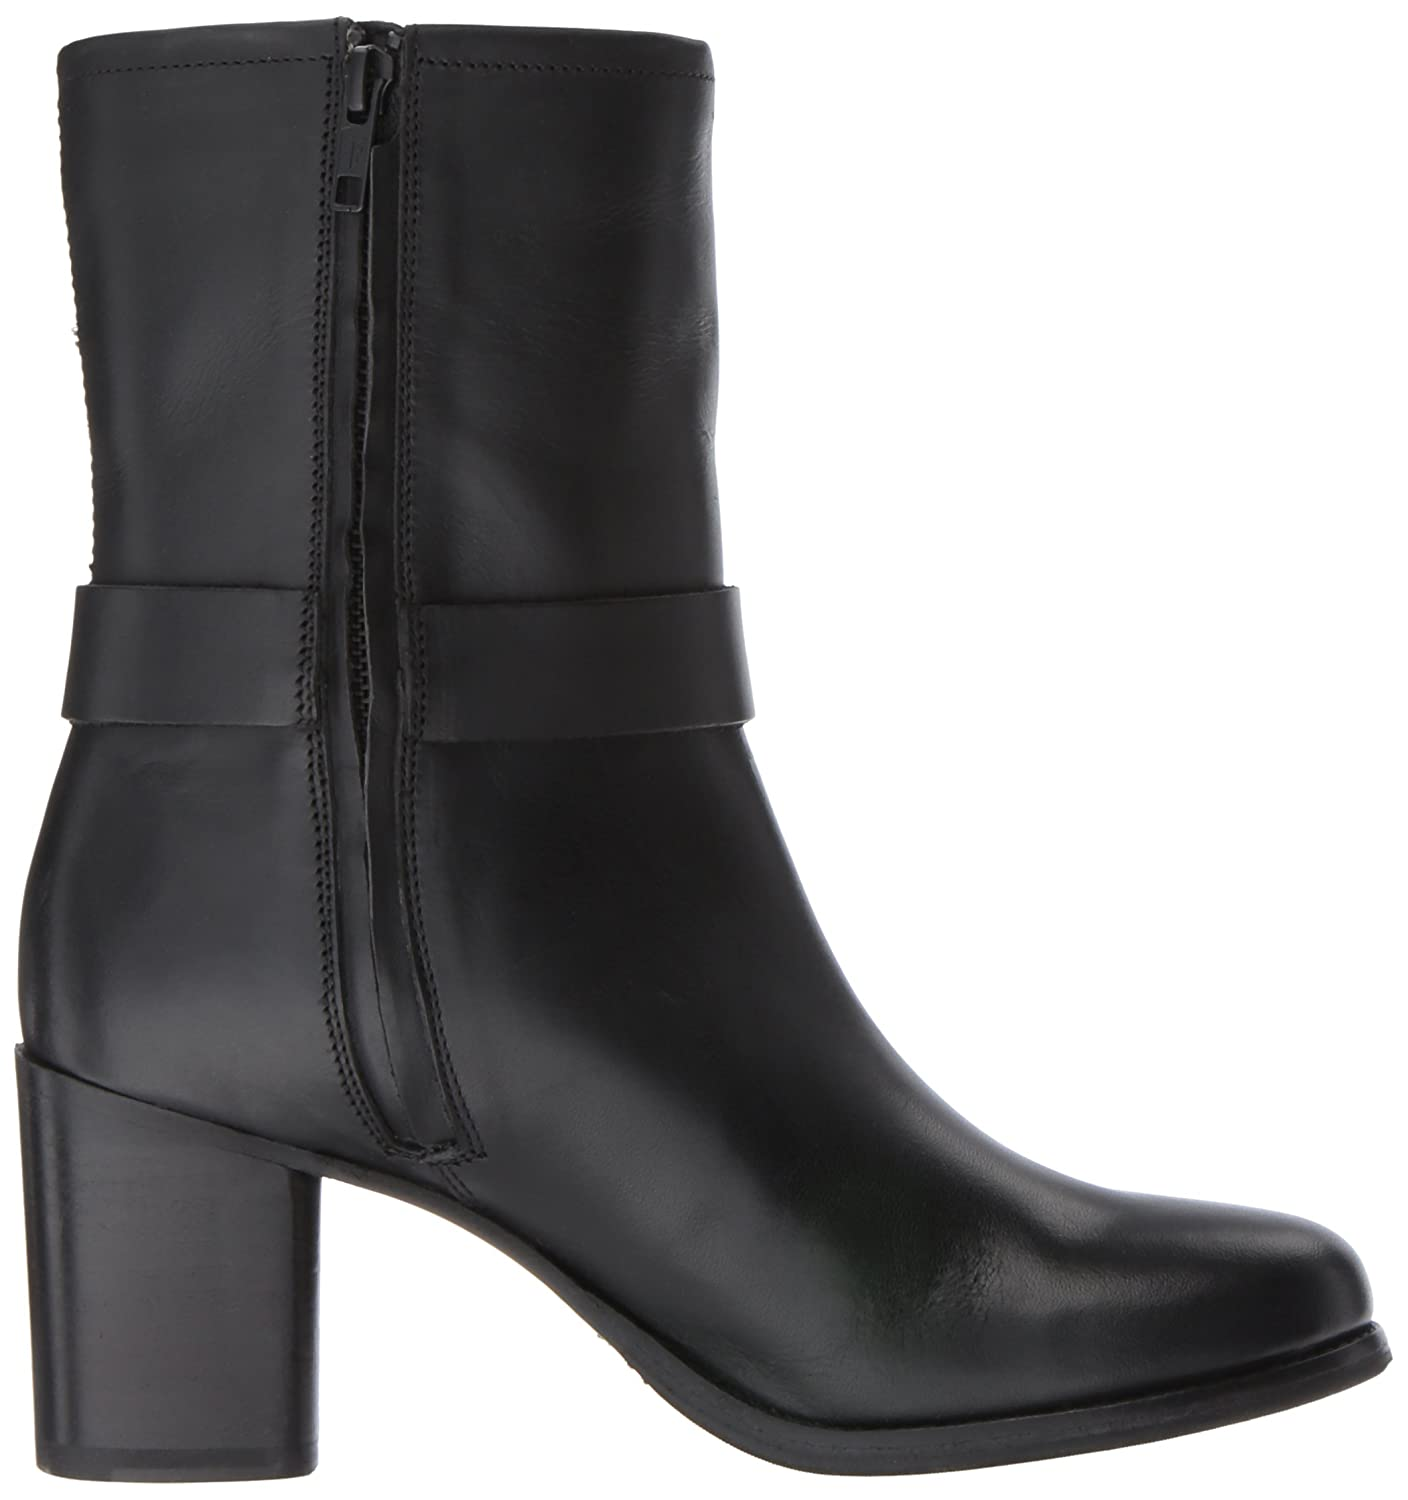 FRYE Women's Addie Harness Mid Boot B01N5O6ZK9 11 M US|Black Smooth Antique Pull Up